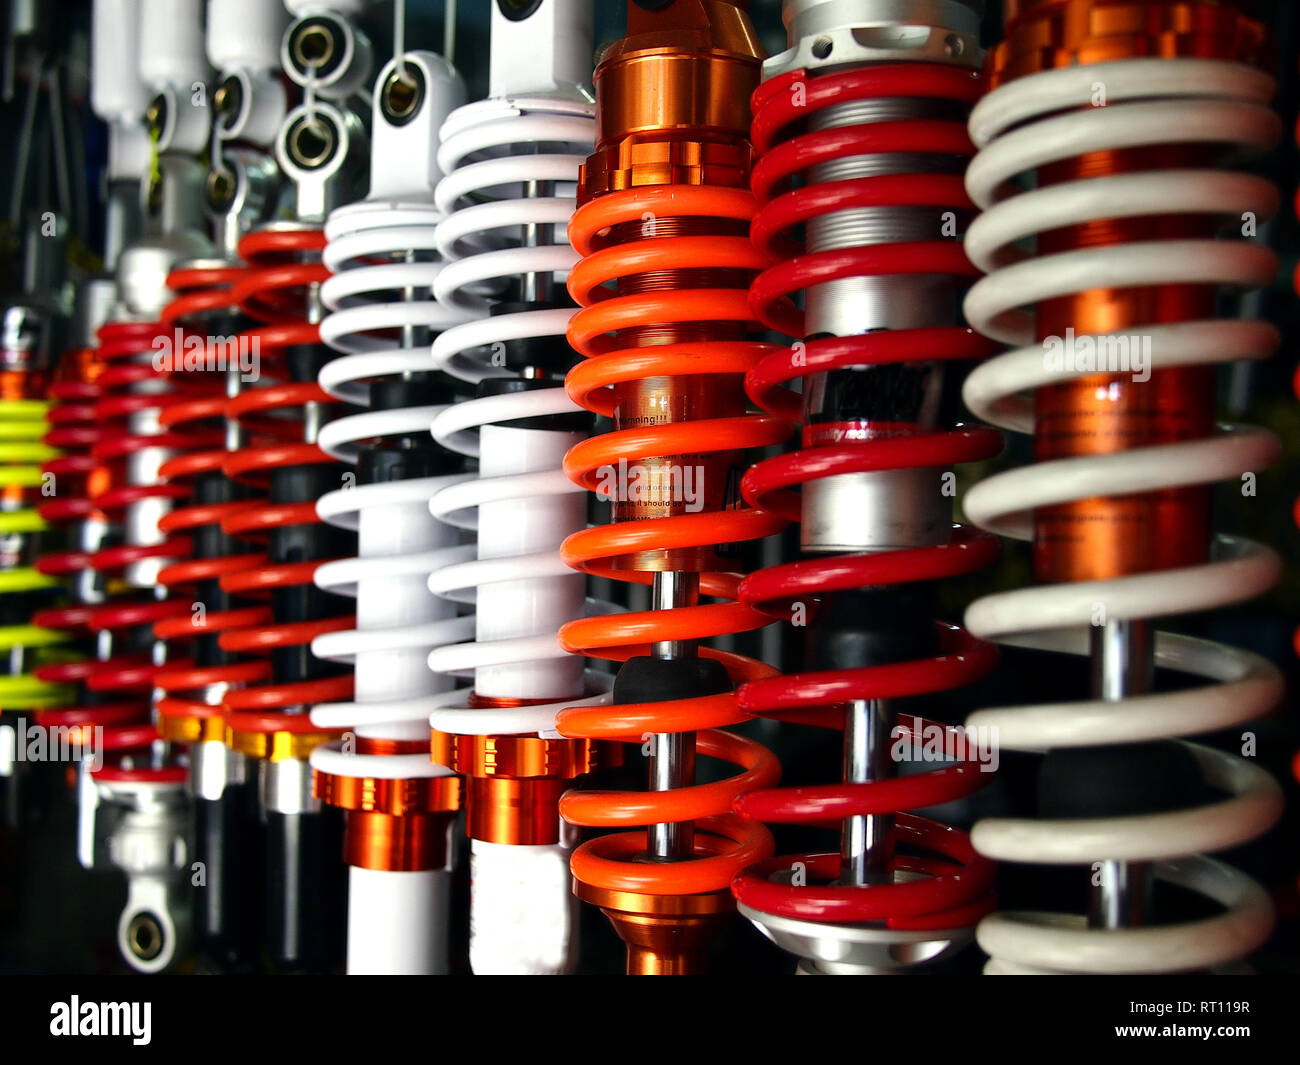 Photo of assorted colorful motorcycle shock absorbers on display at a motorcycle shop - Stock Image